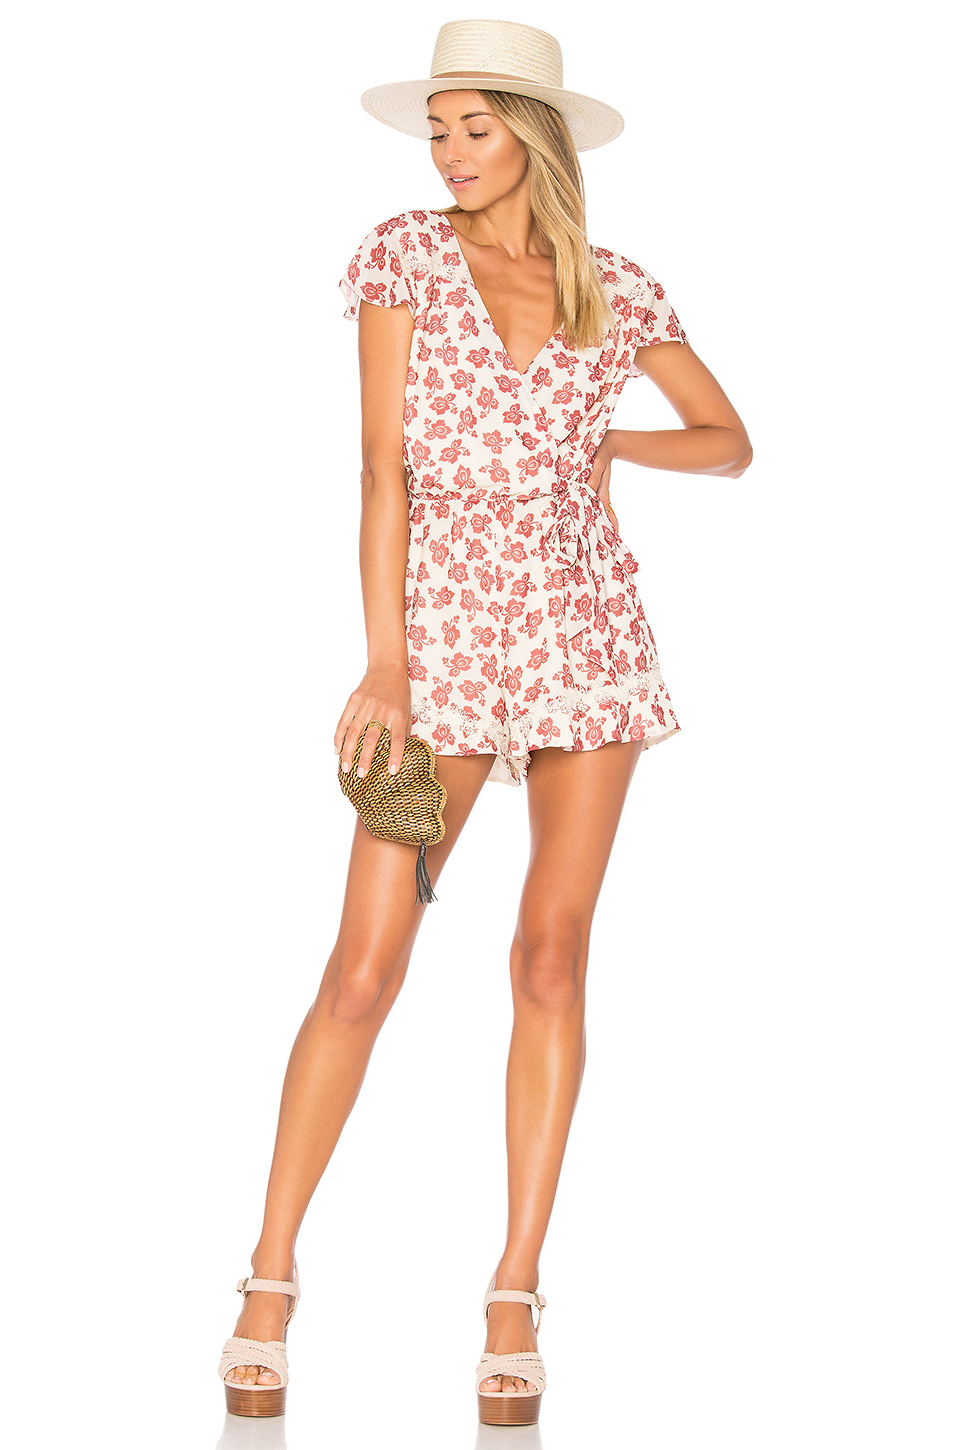 Tularosa Ashby Romper in Floral Paisley